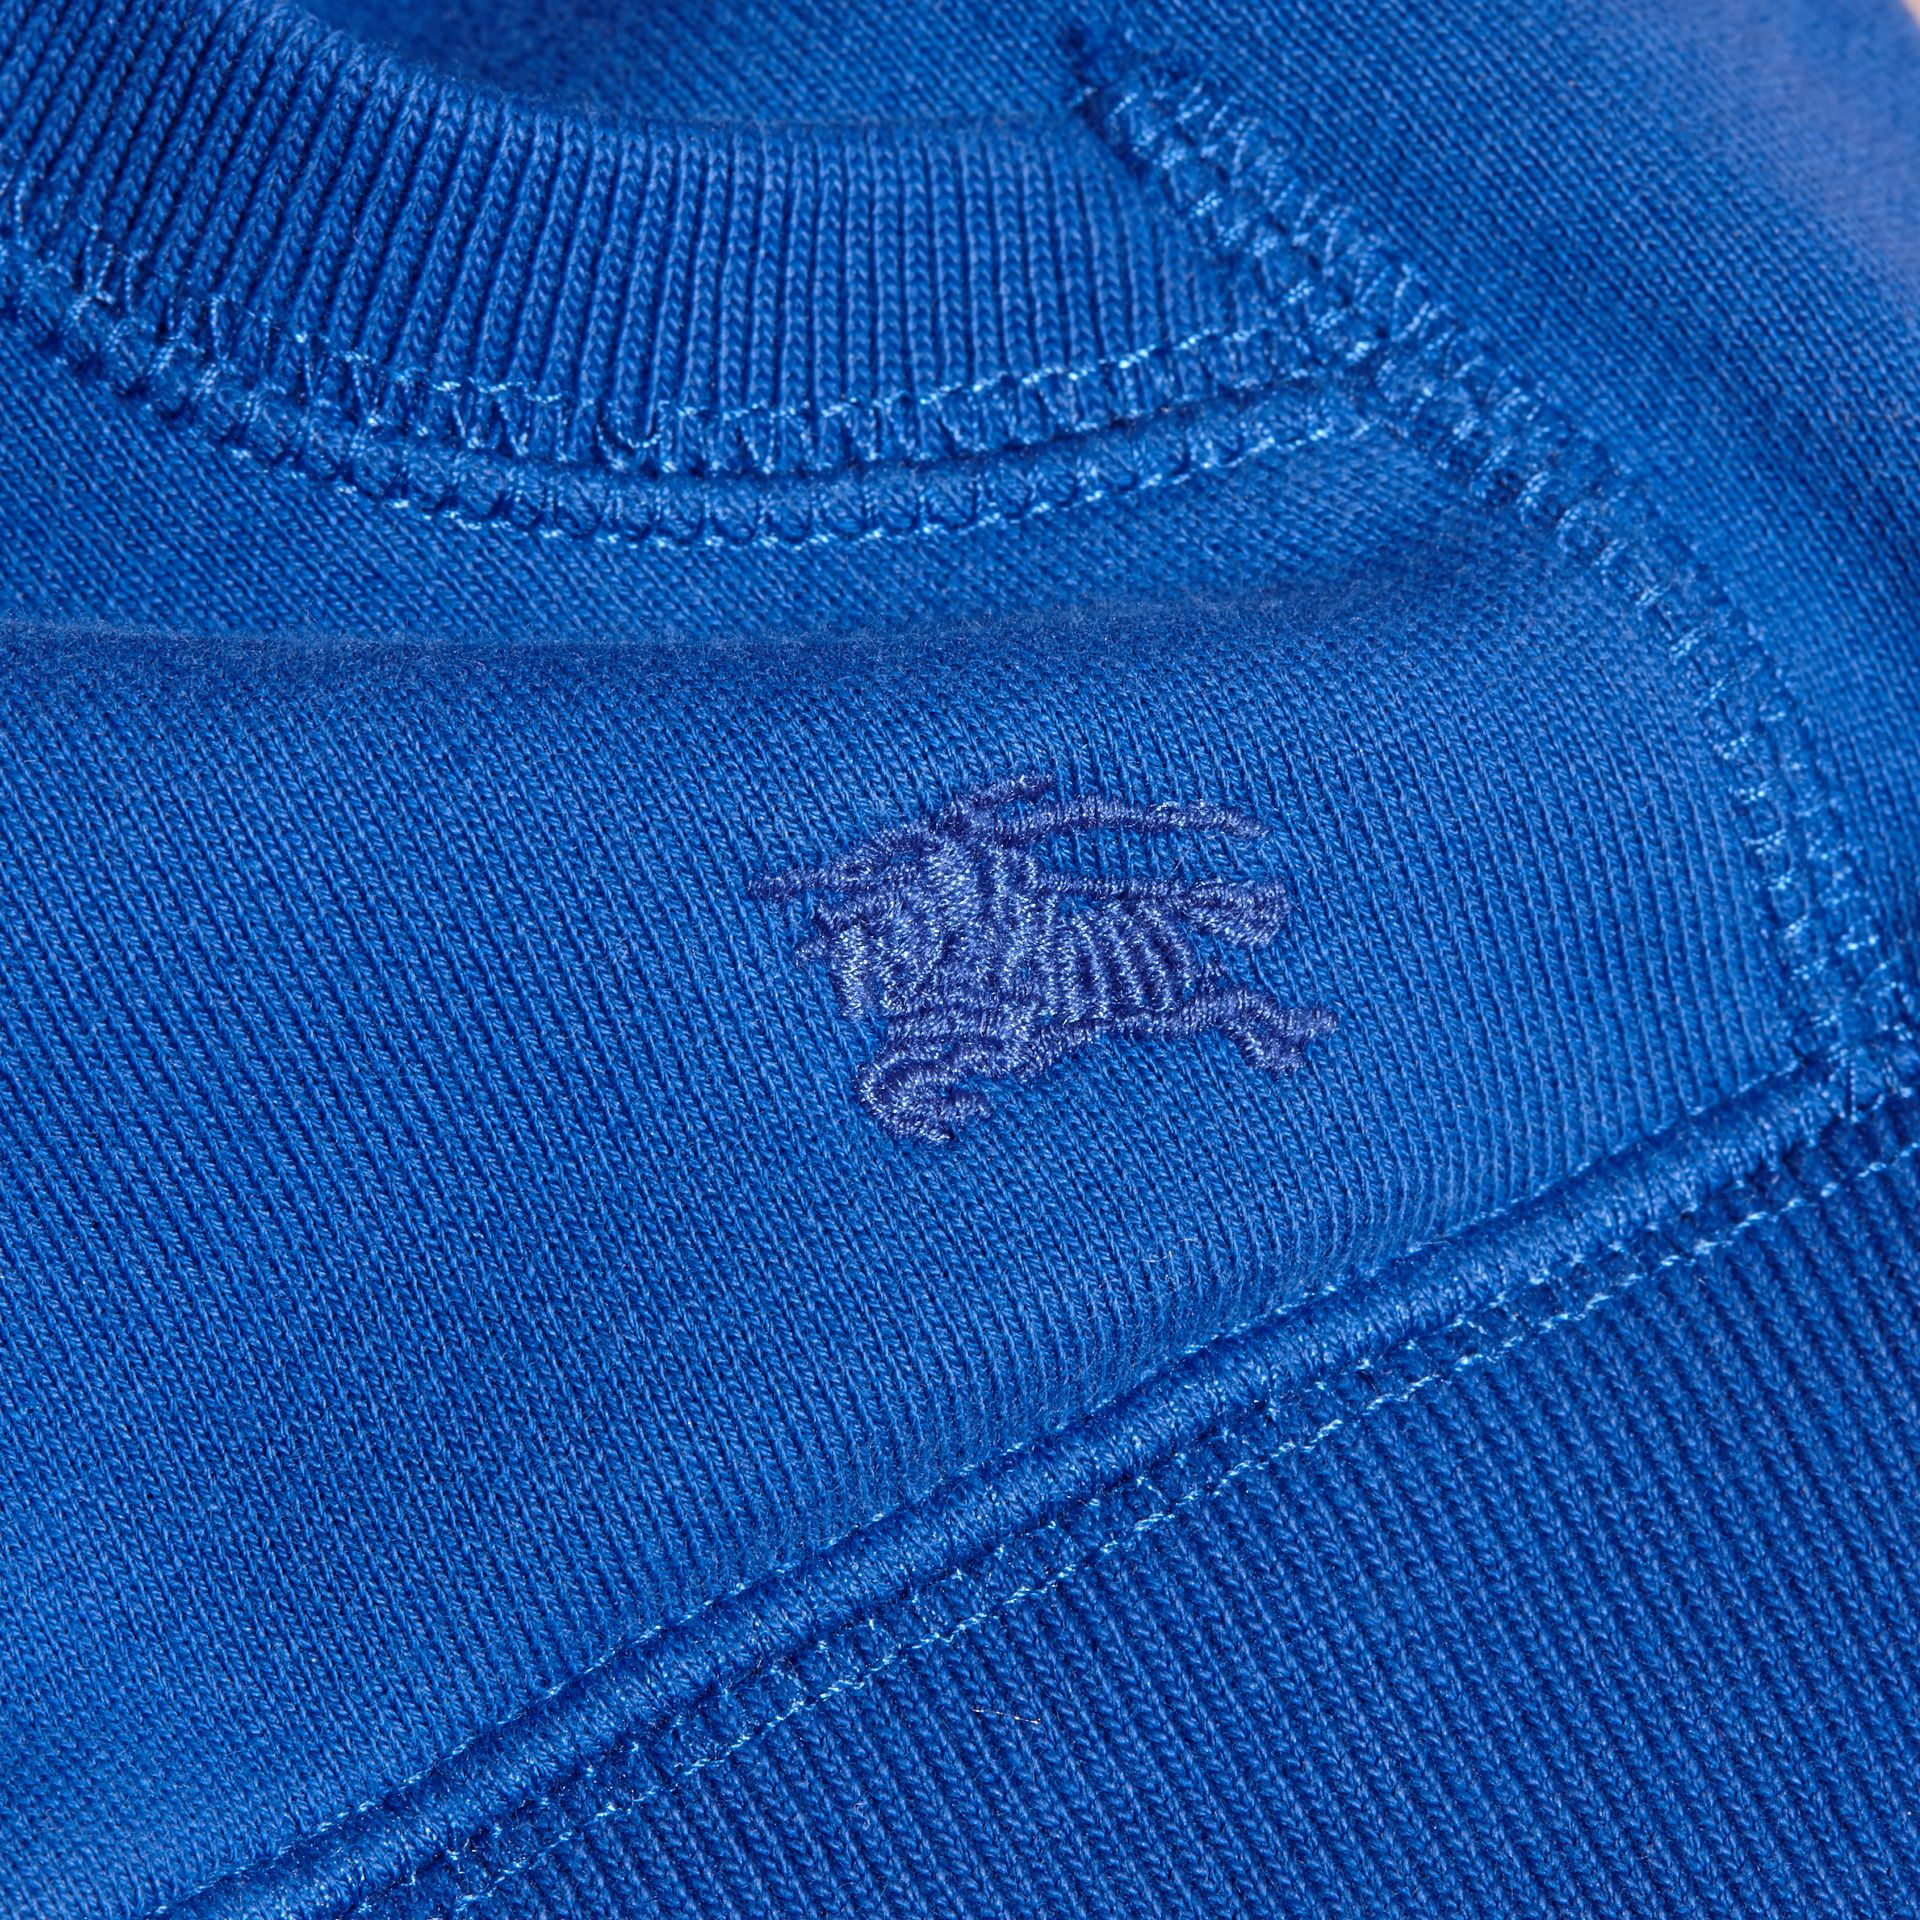 Brilliant blue Hooded Cotton Top Brilliant Blue - gallery image 2